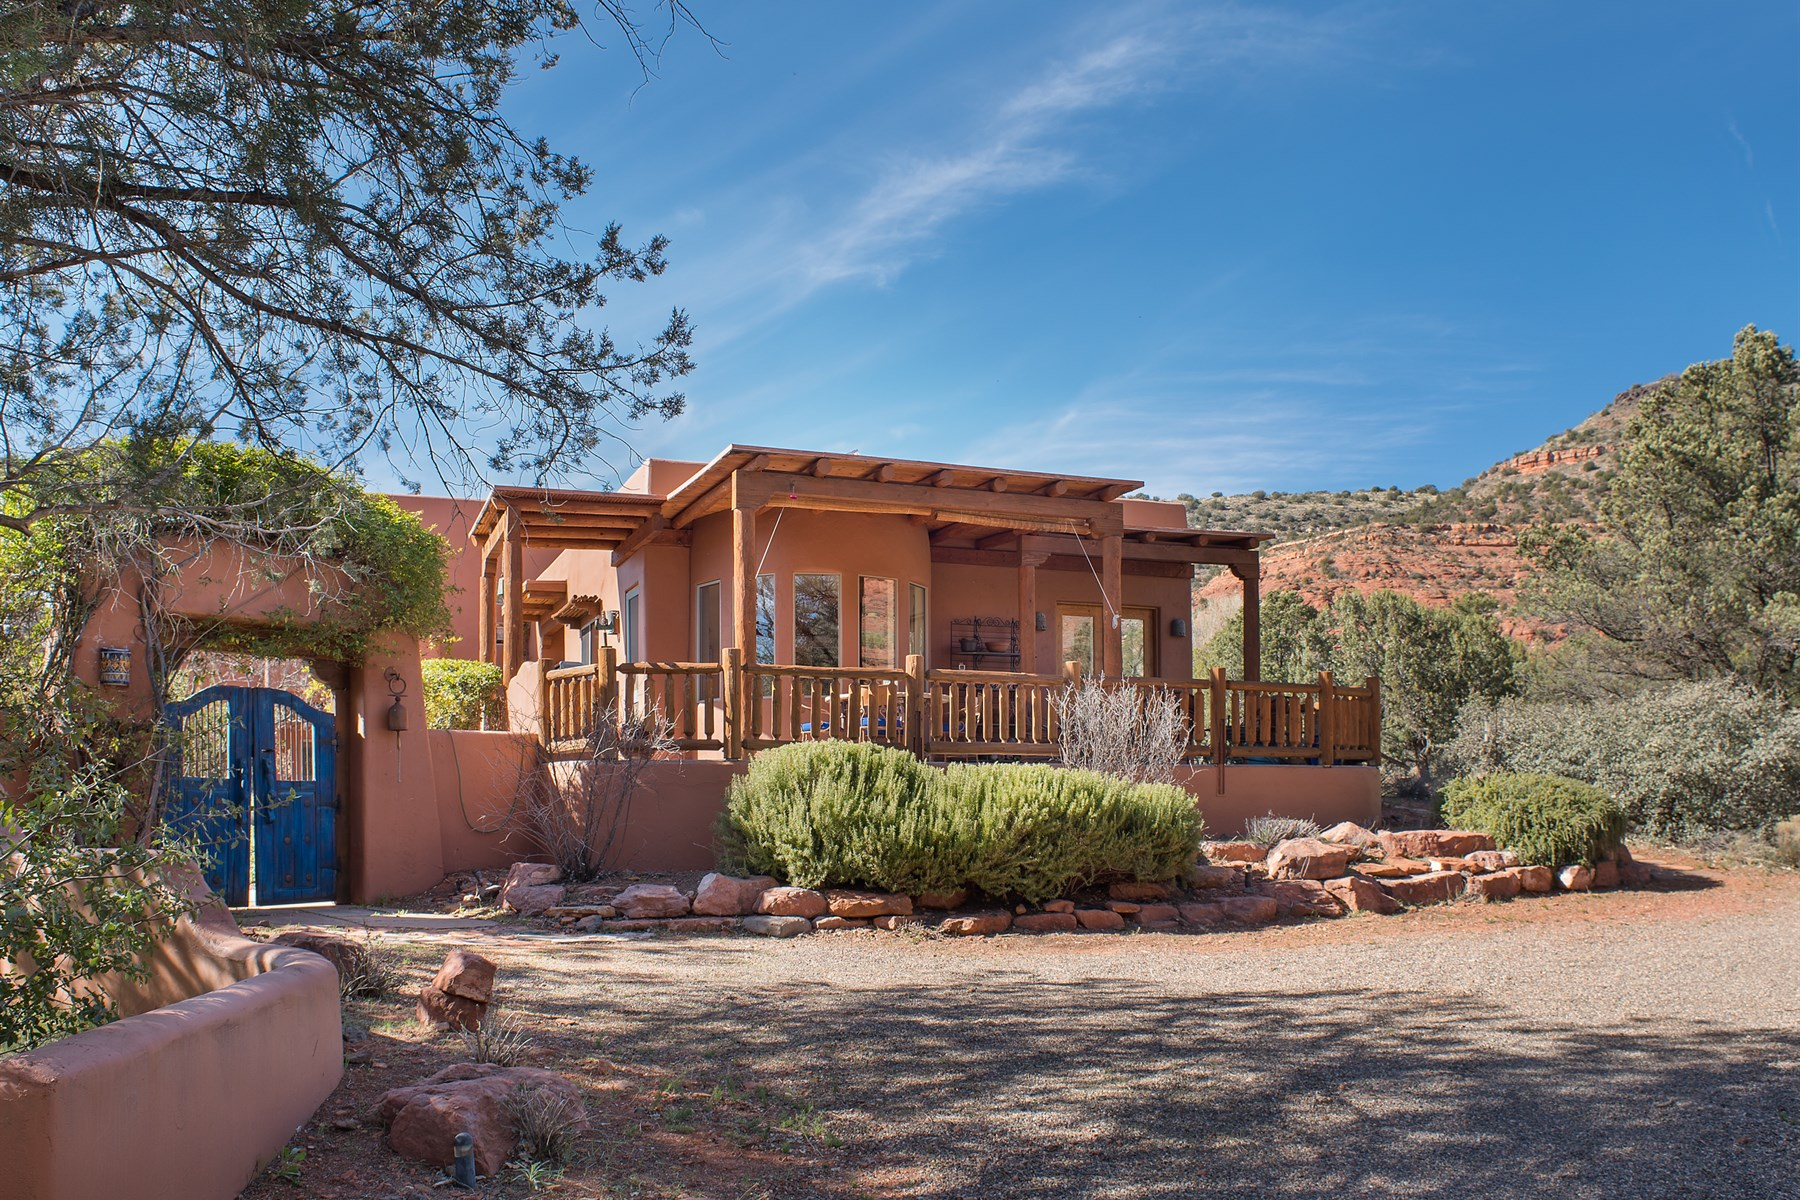 Single Family Home for Sale at Off of scenic Red Rock Loop road this southwest treasurer 75 Cimarron Ridge Drive Sedona, Arizona, 86336 United States